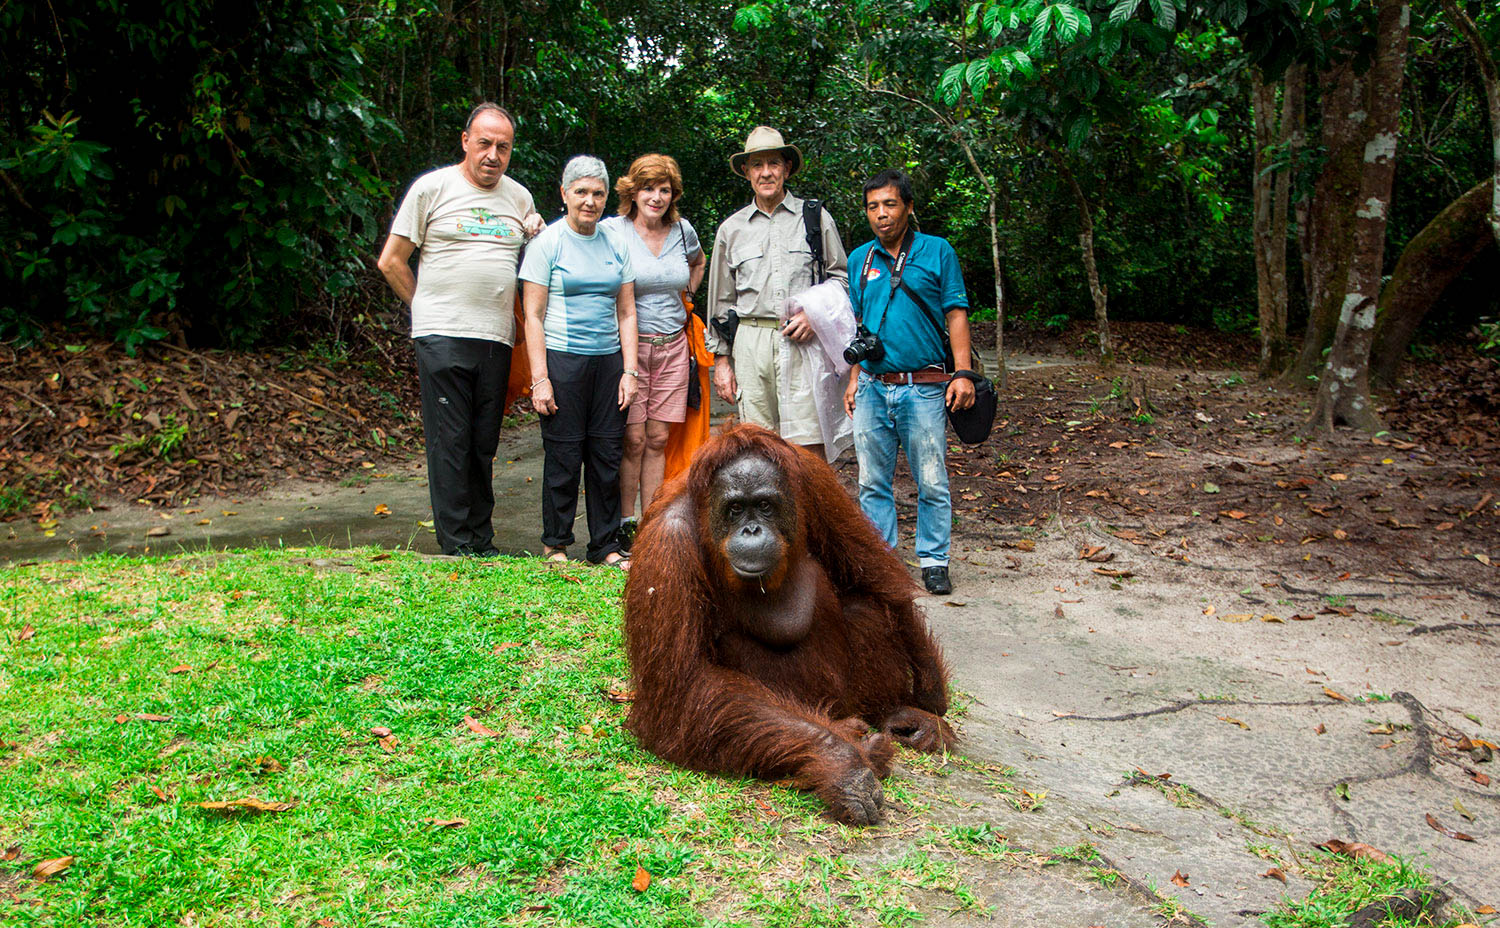 Orangutan and group